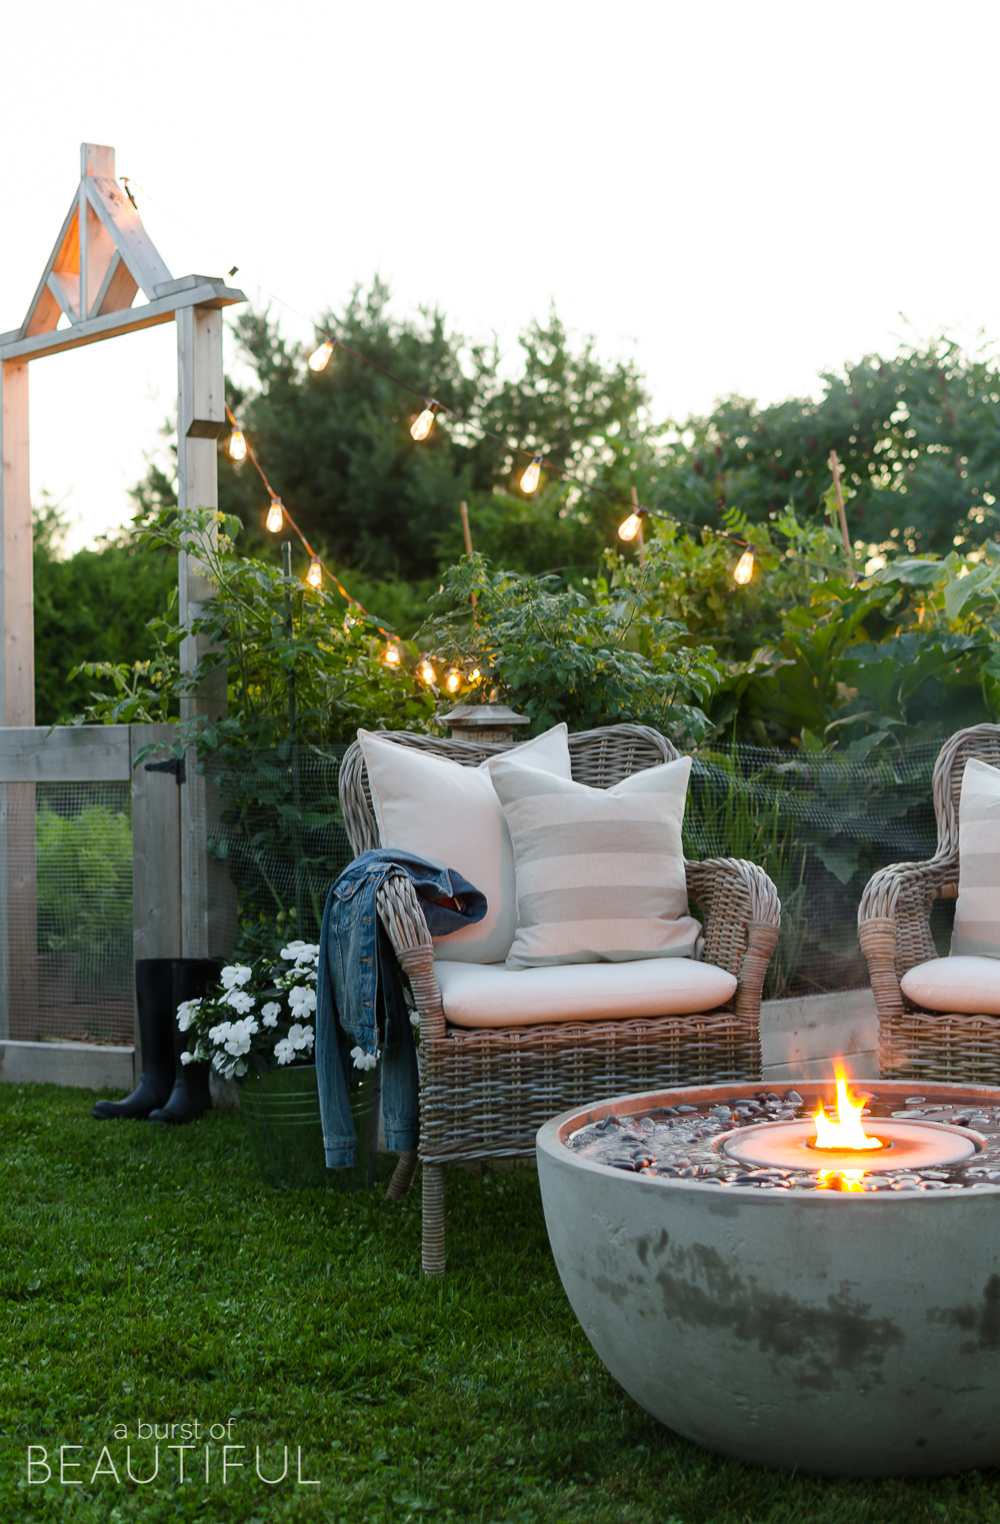 Adding ambiance to our outdoor living space outdoor fire for Creating an outdoor living space